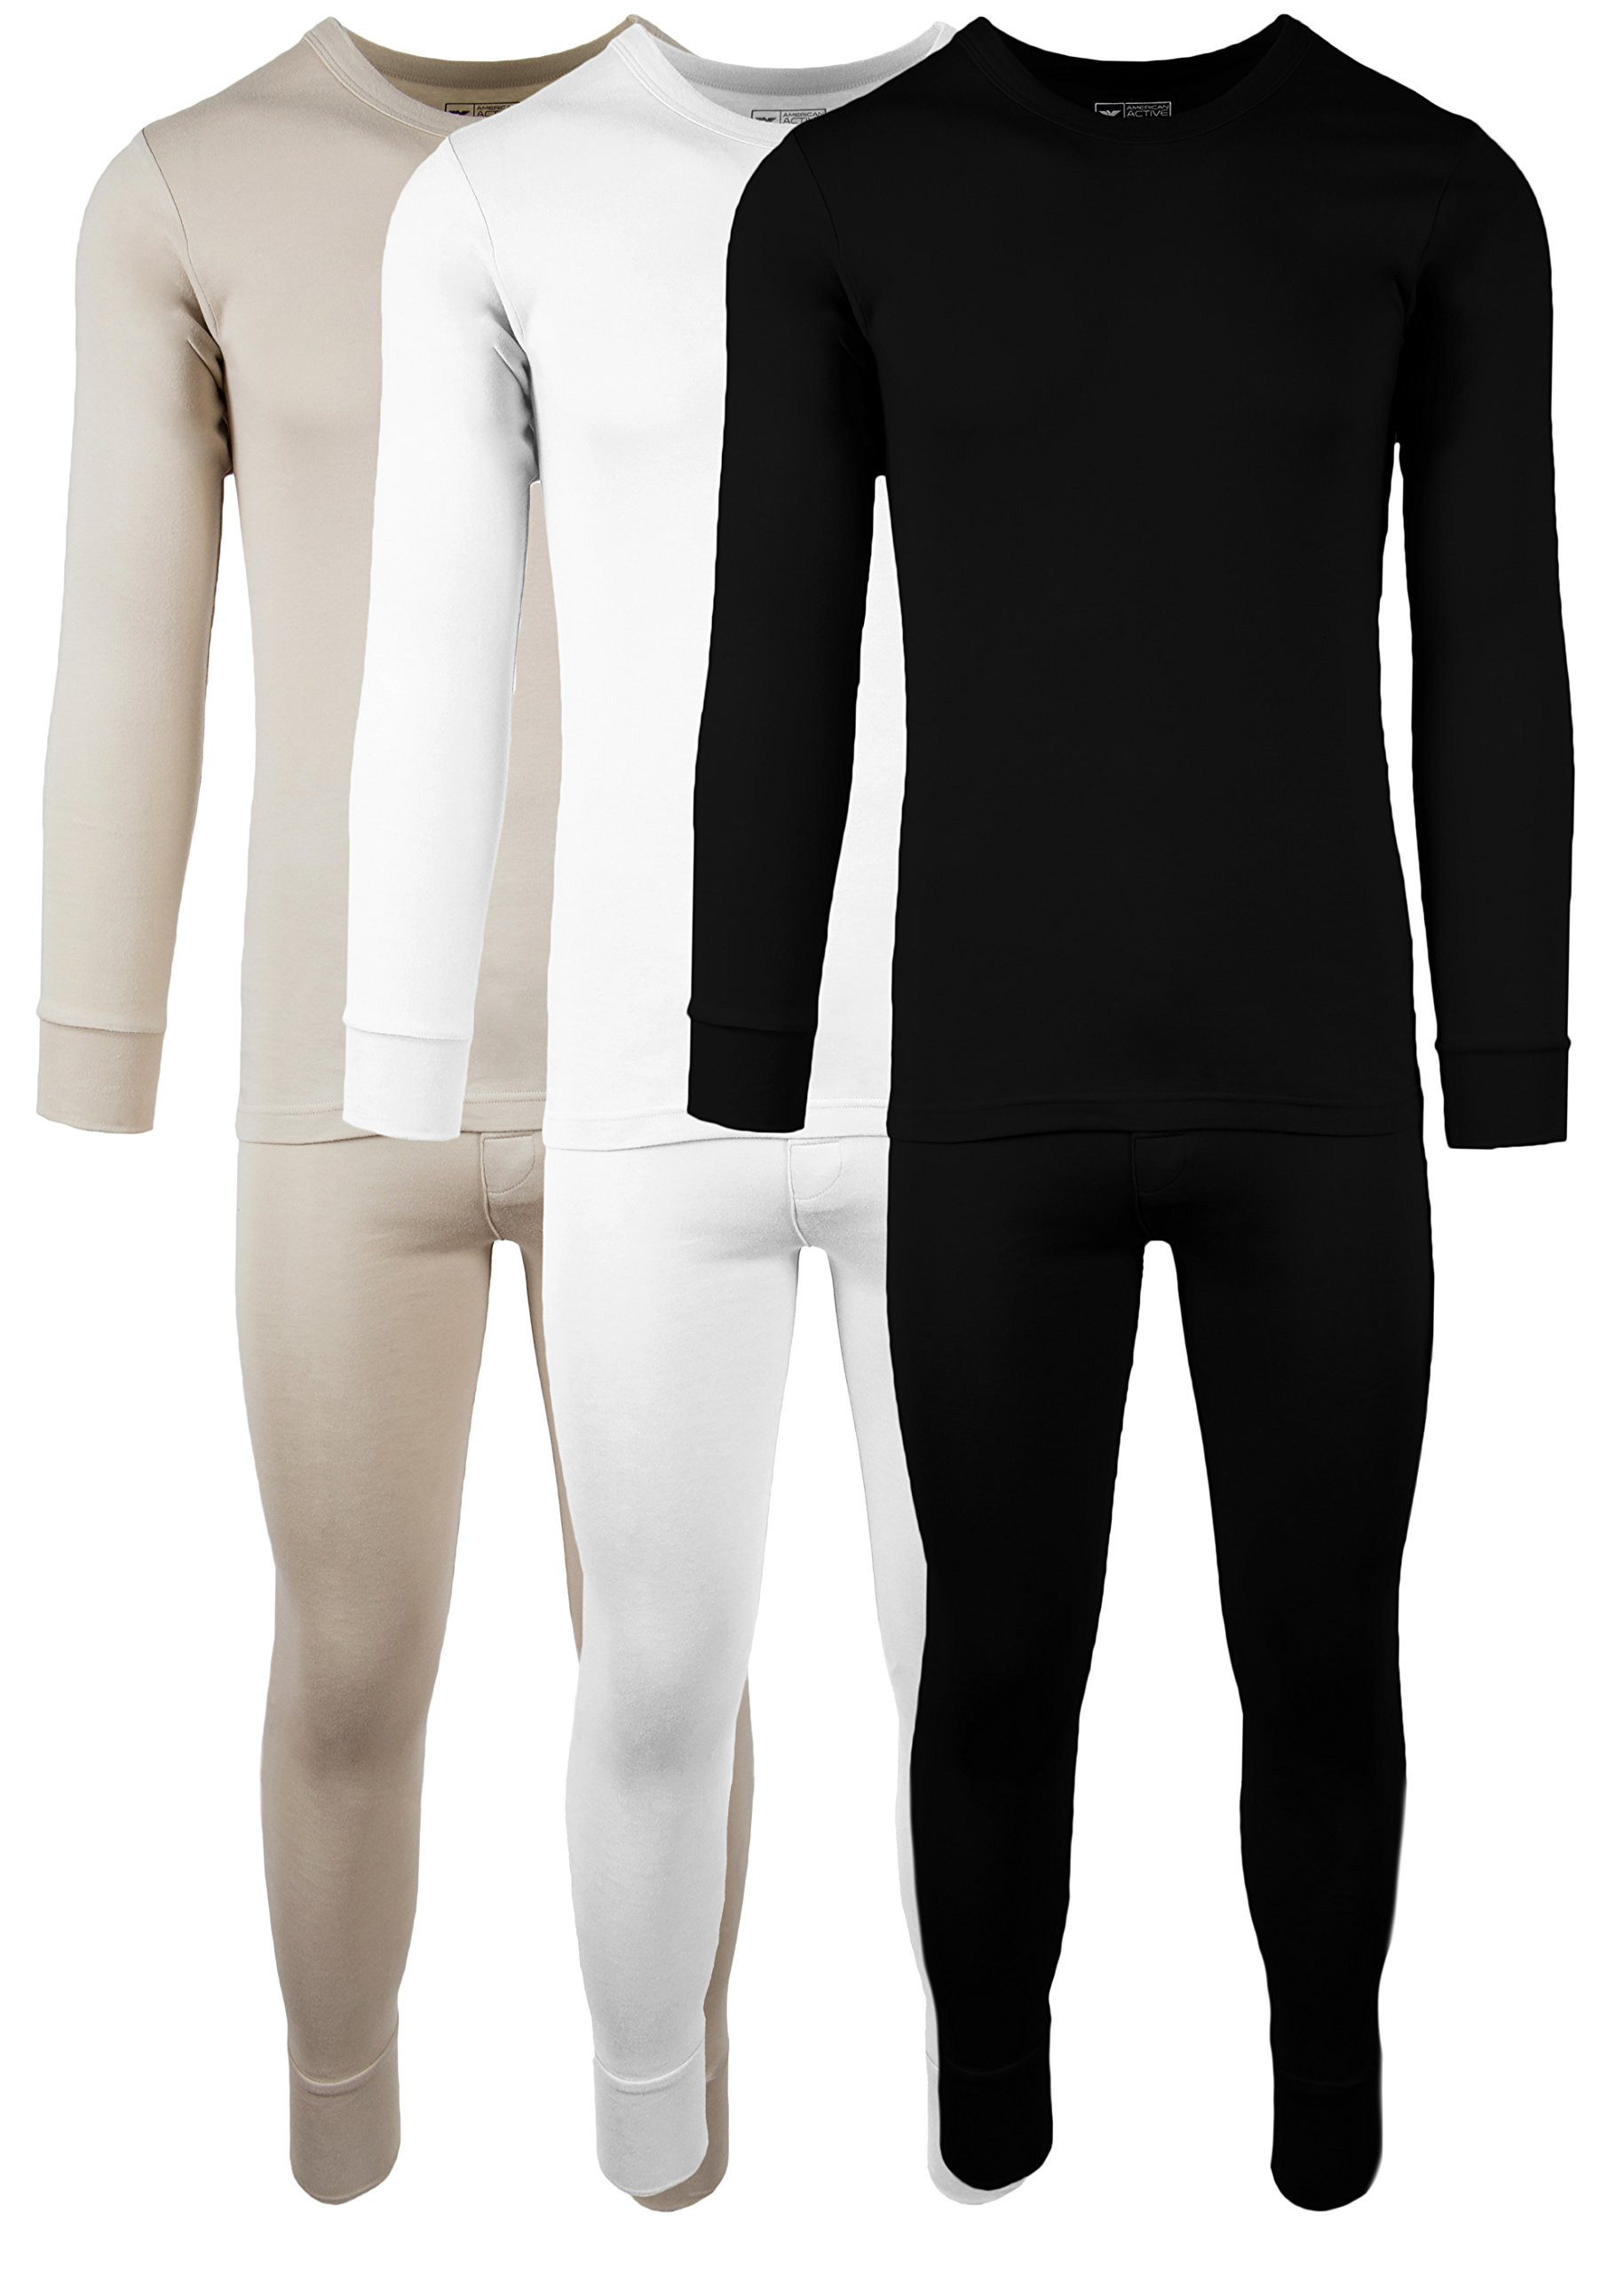 AMERICAN ACTIVE Men's 3 Pack 100% Cotton Fleece Lined Base Layer Thermal Underwear 2 Piece Set (3 Sets- Black/Cream/Sand, Large)